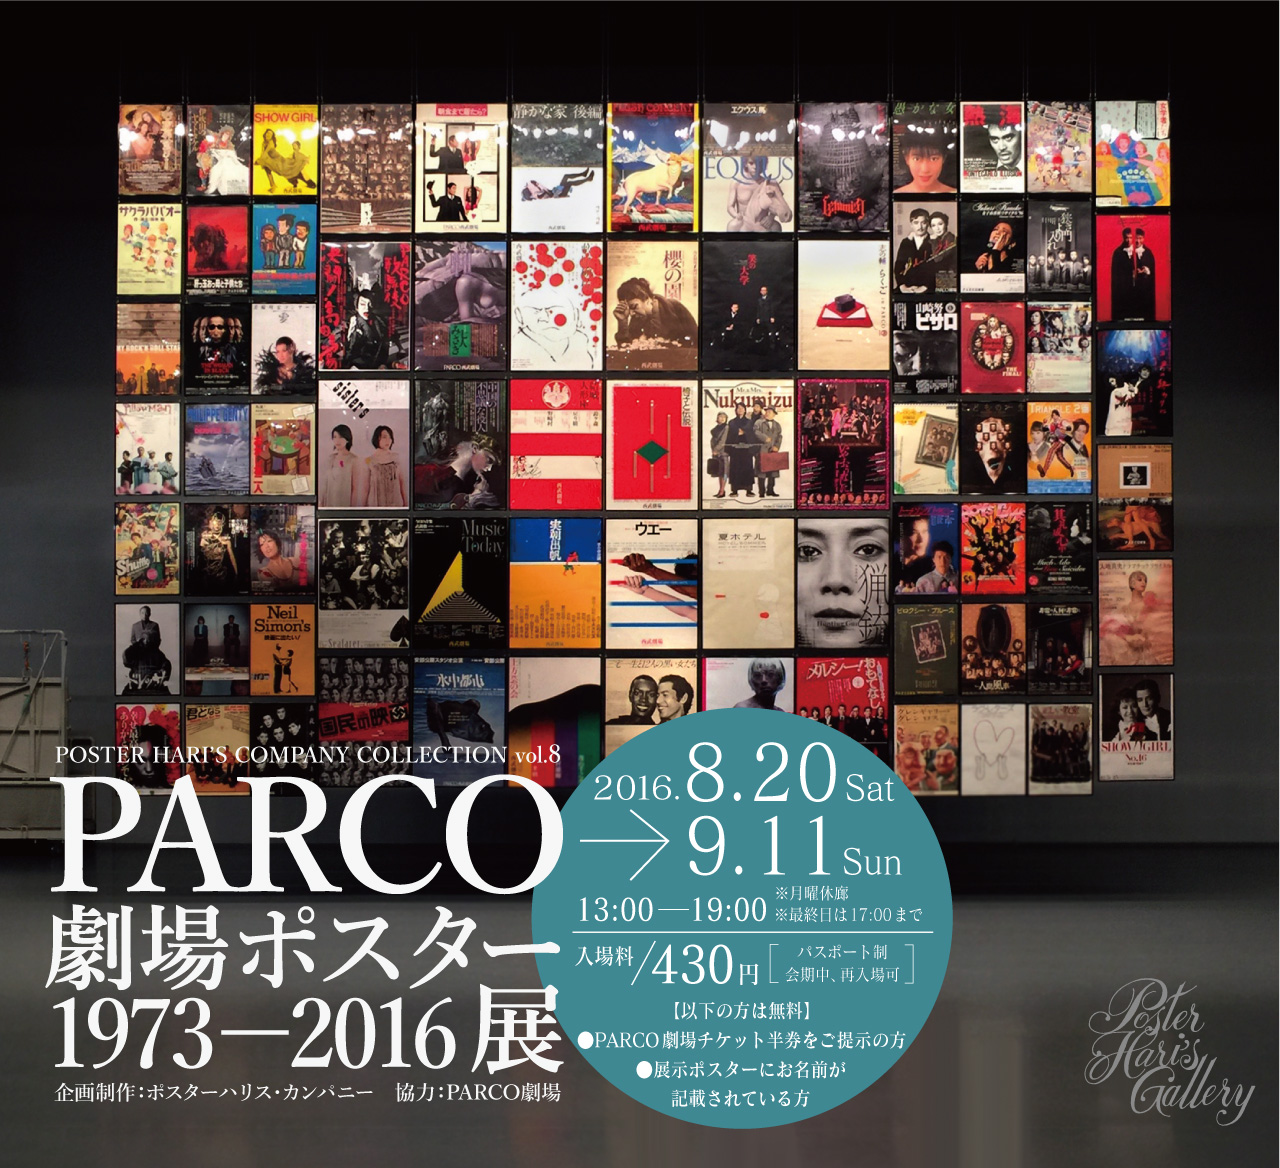 PARCO劇場ポスター1973〜2016展